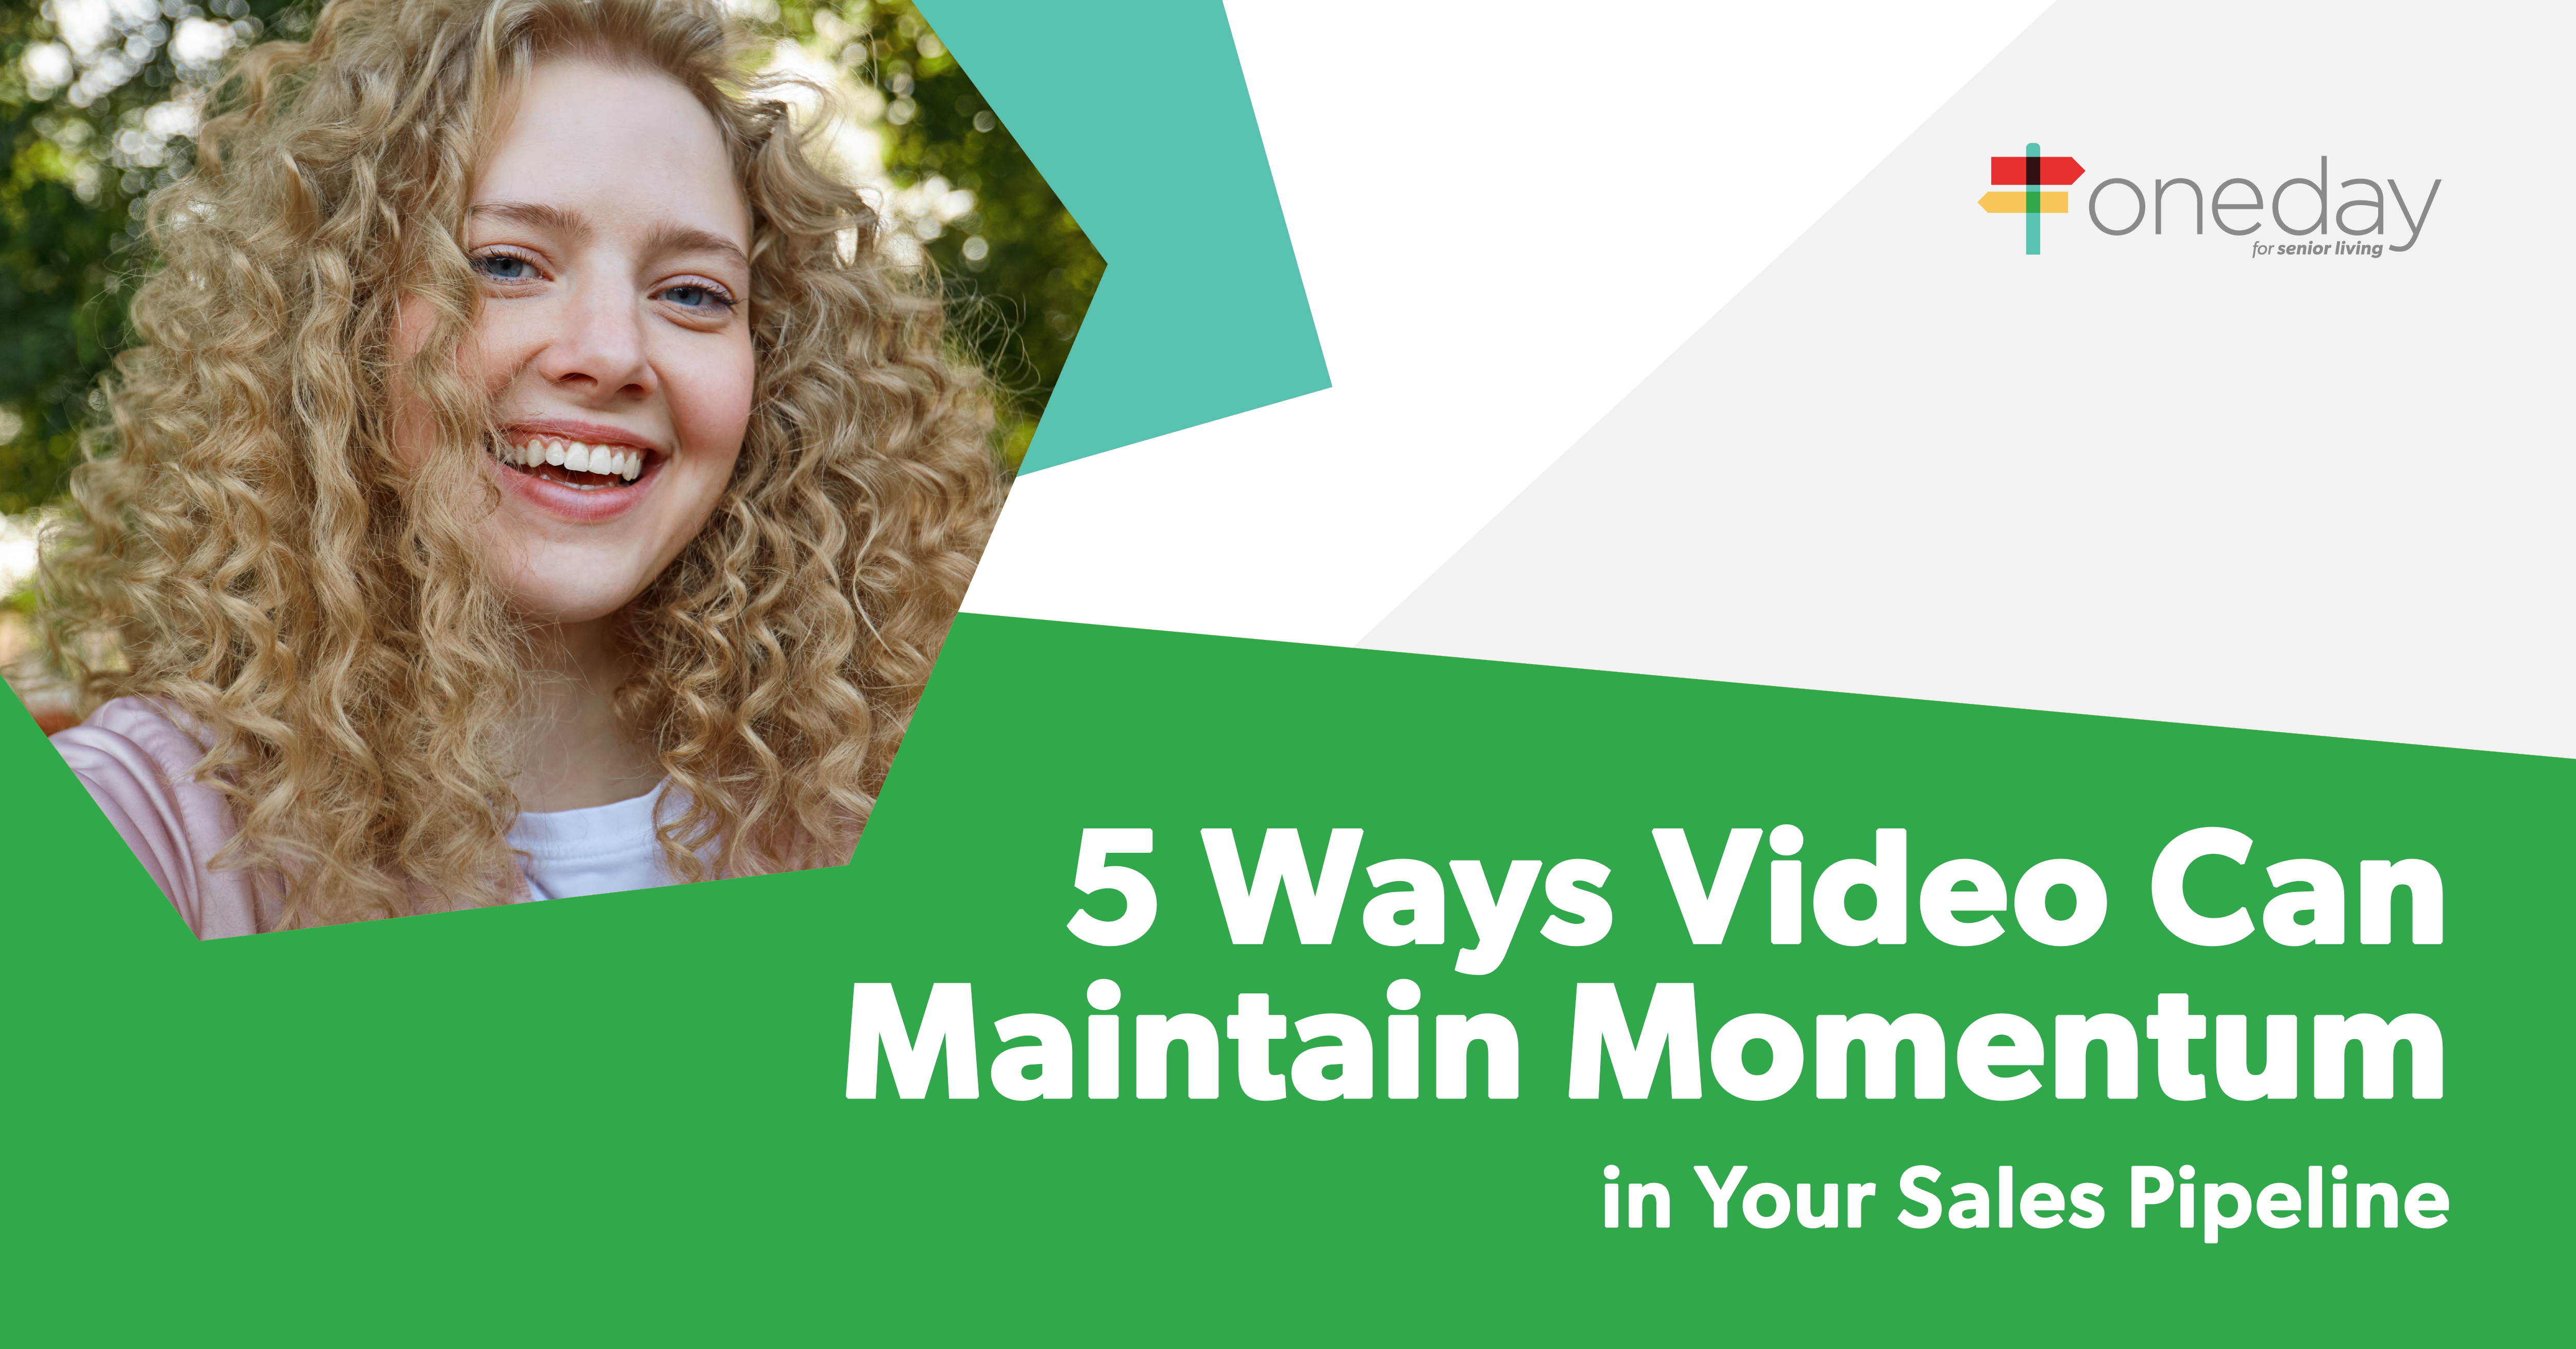 A look at some key video sales and marketing best practices to ensure your senior living community maintains momentum across the entire sales process.